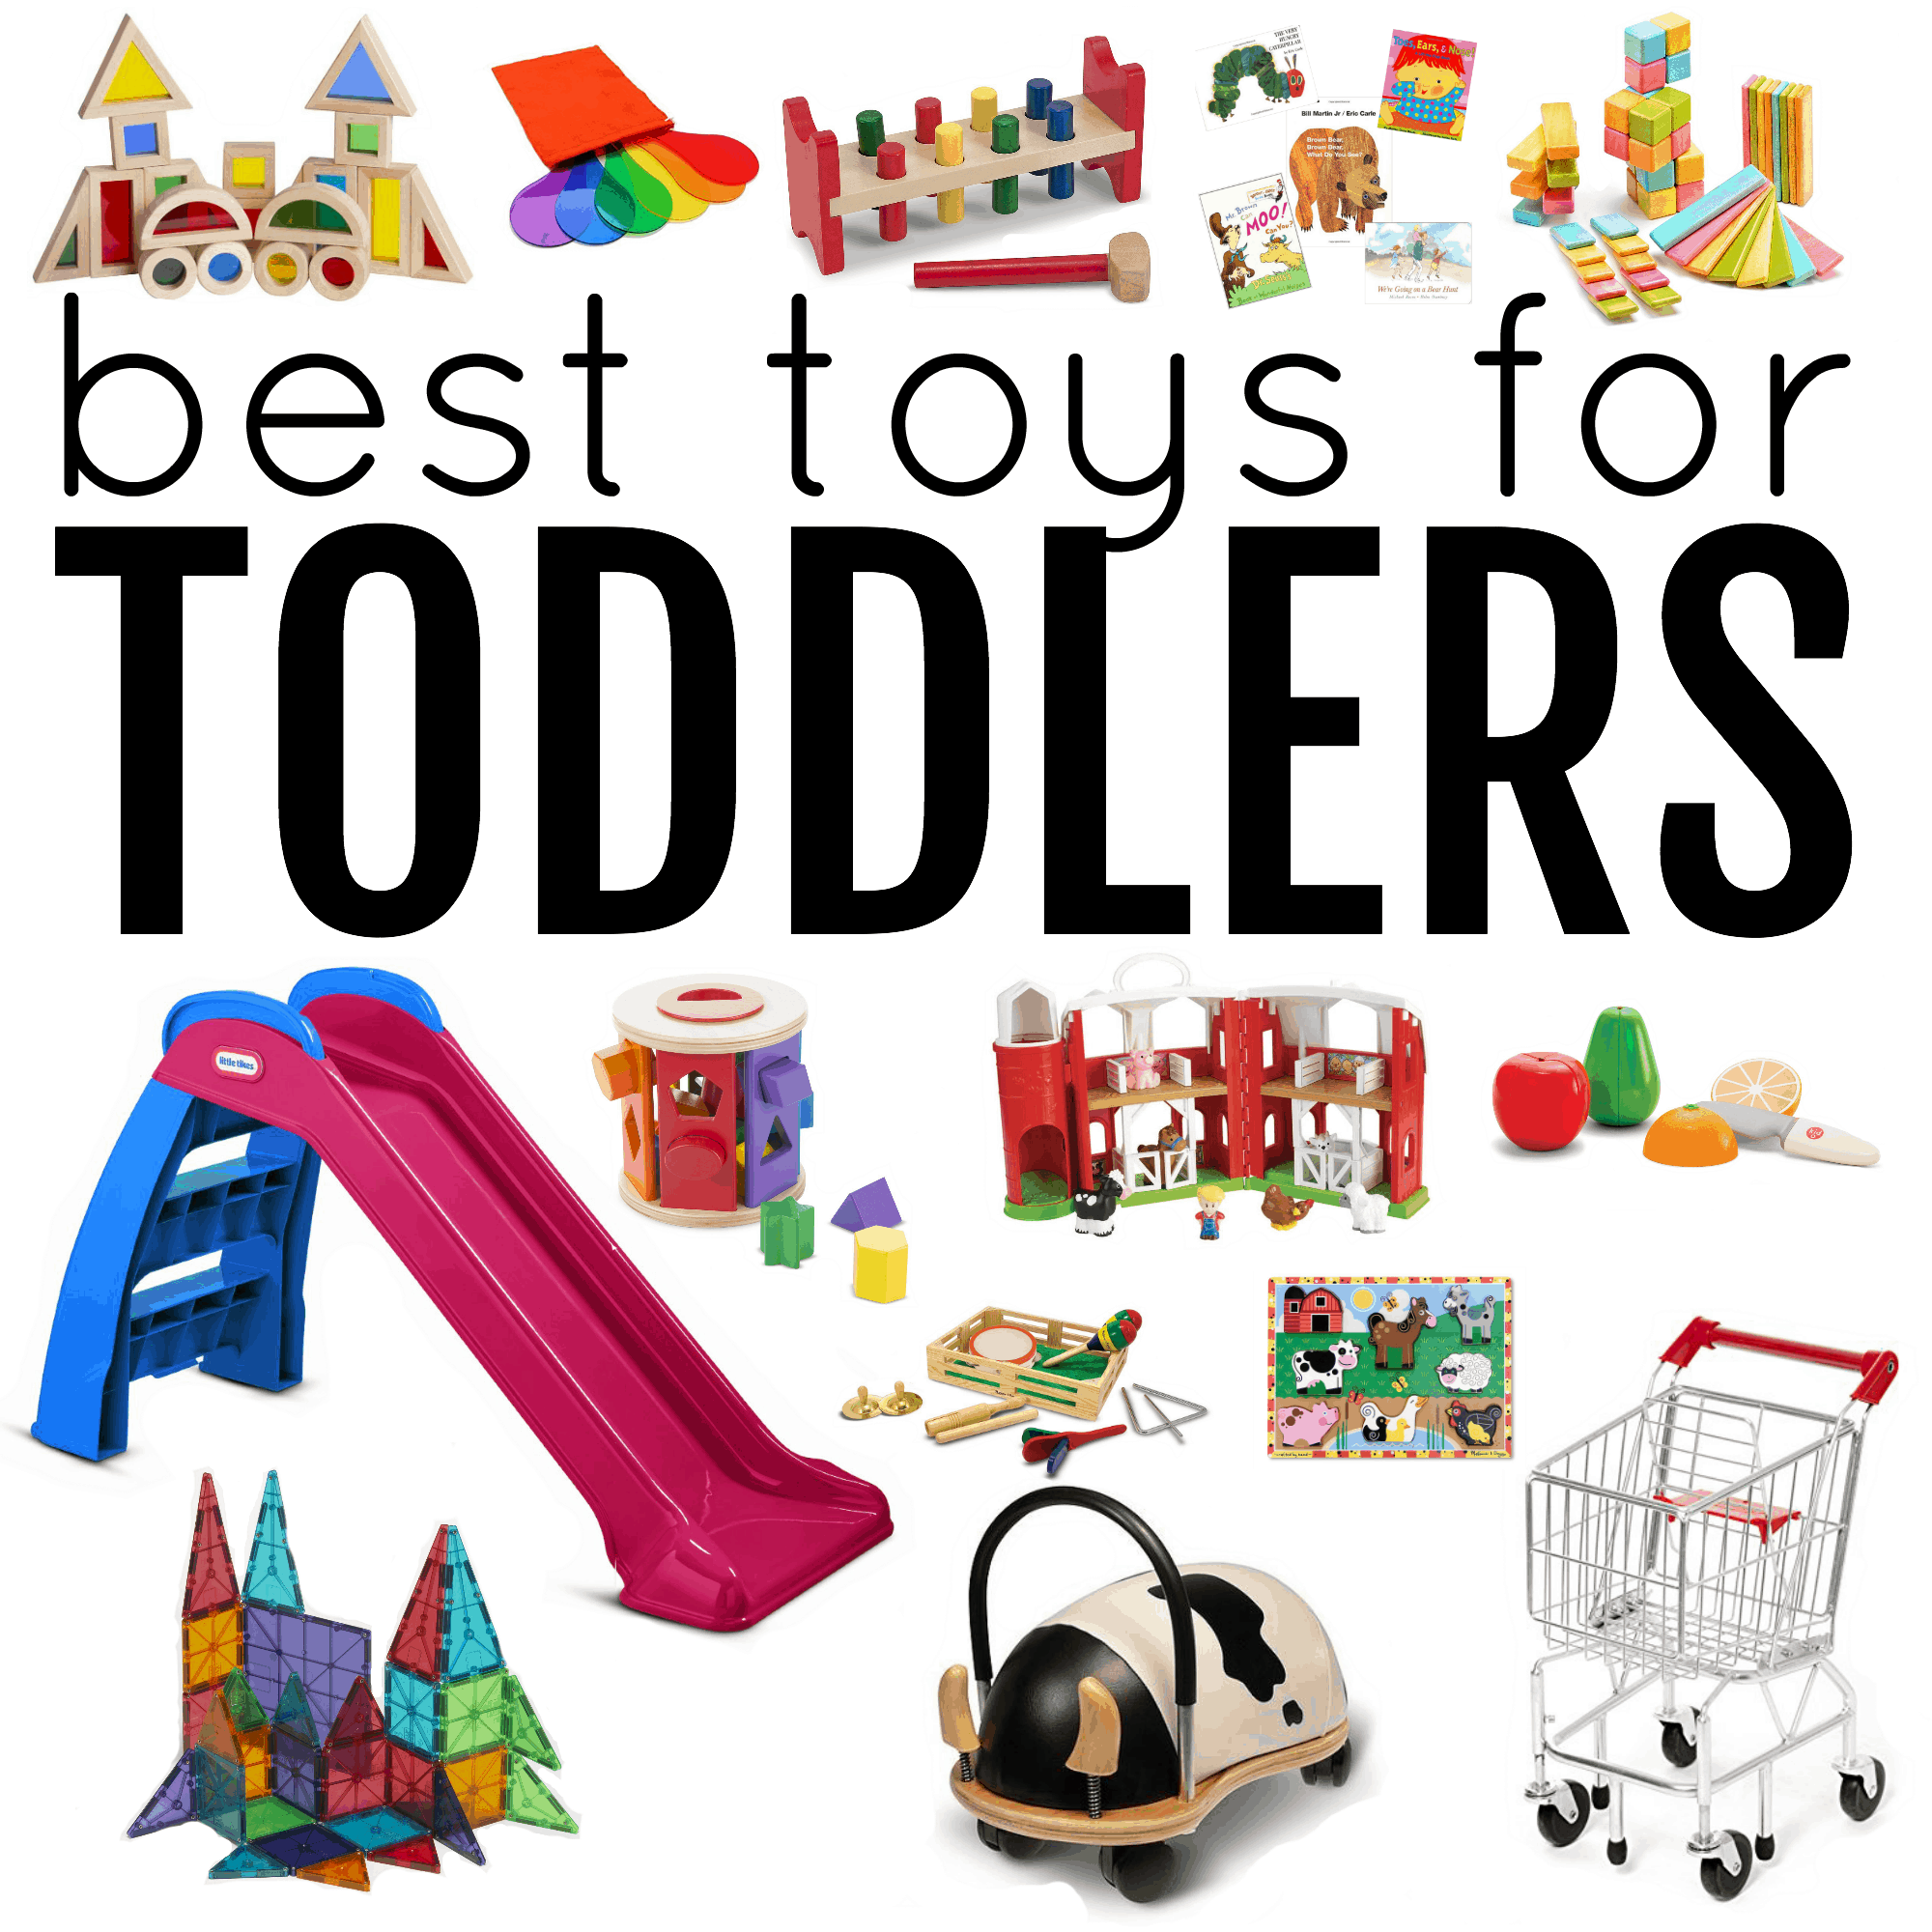 Toys For Preschoolers : Best toys for toddlers i can teach my child